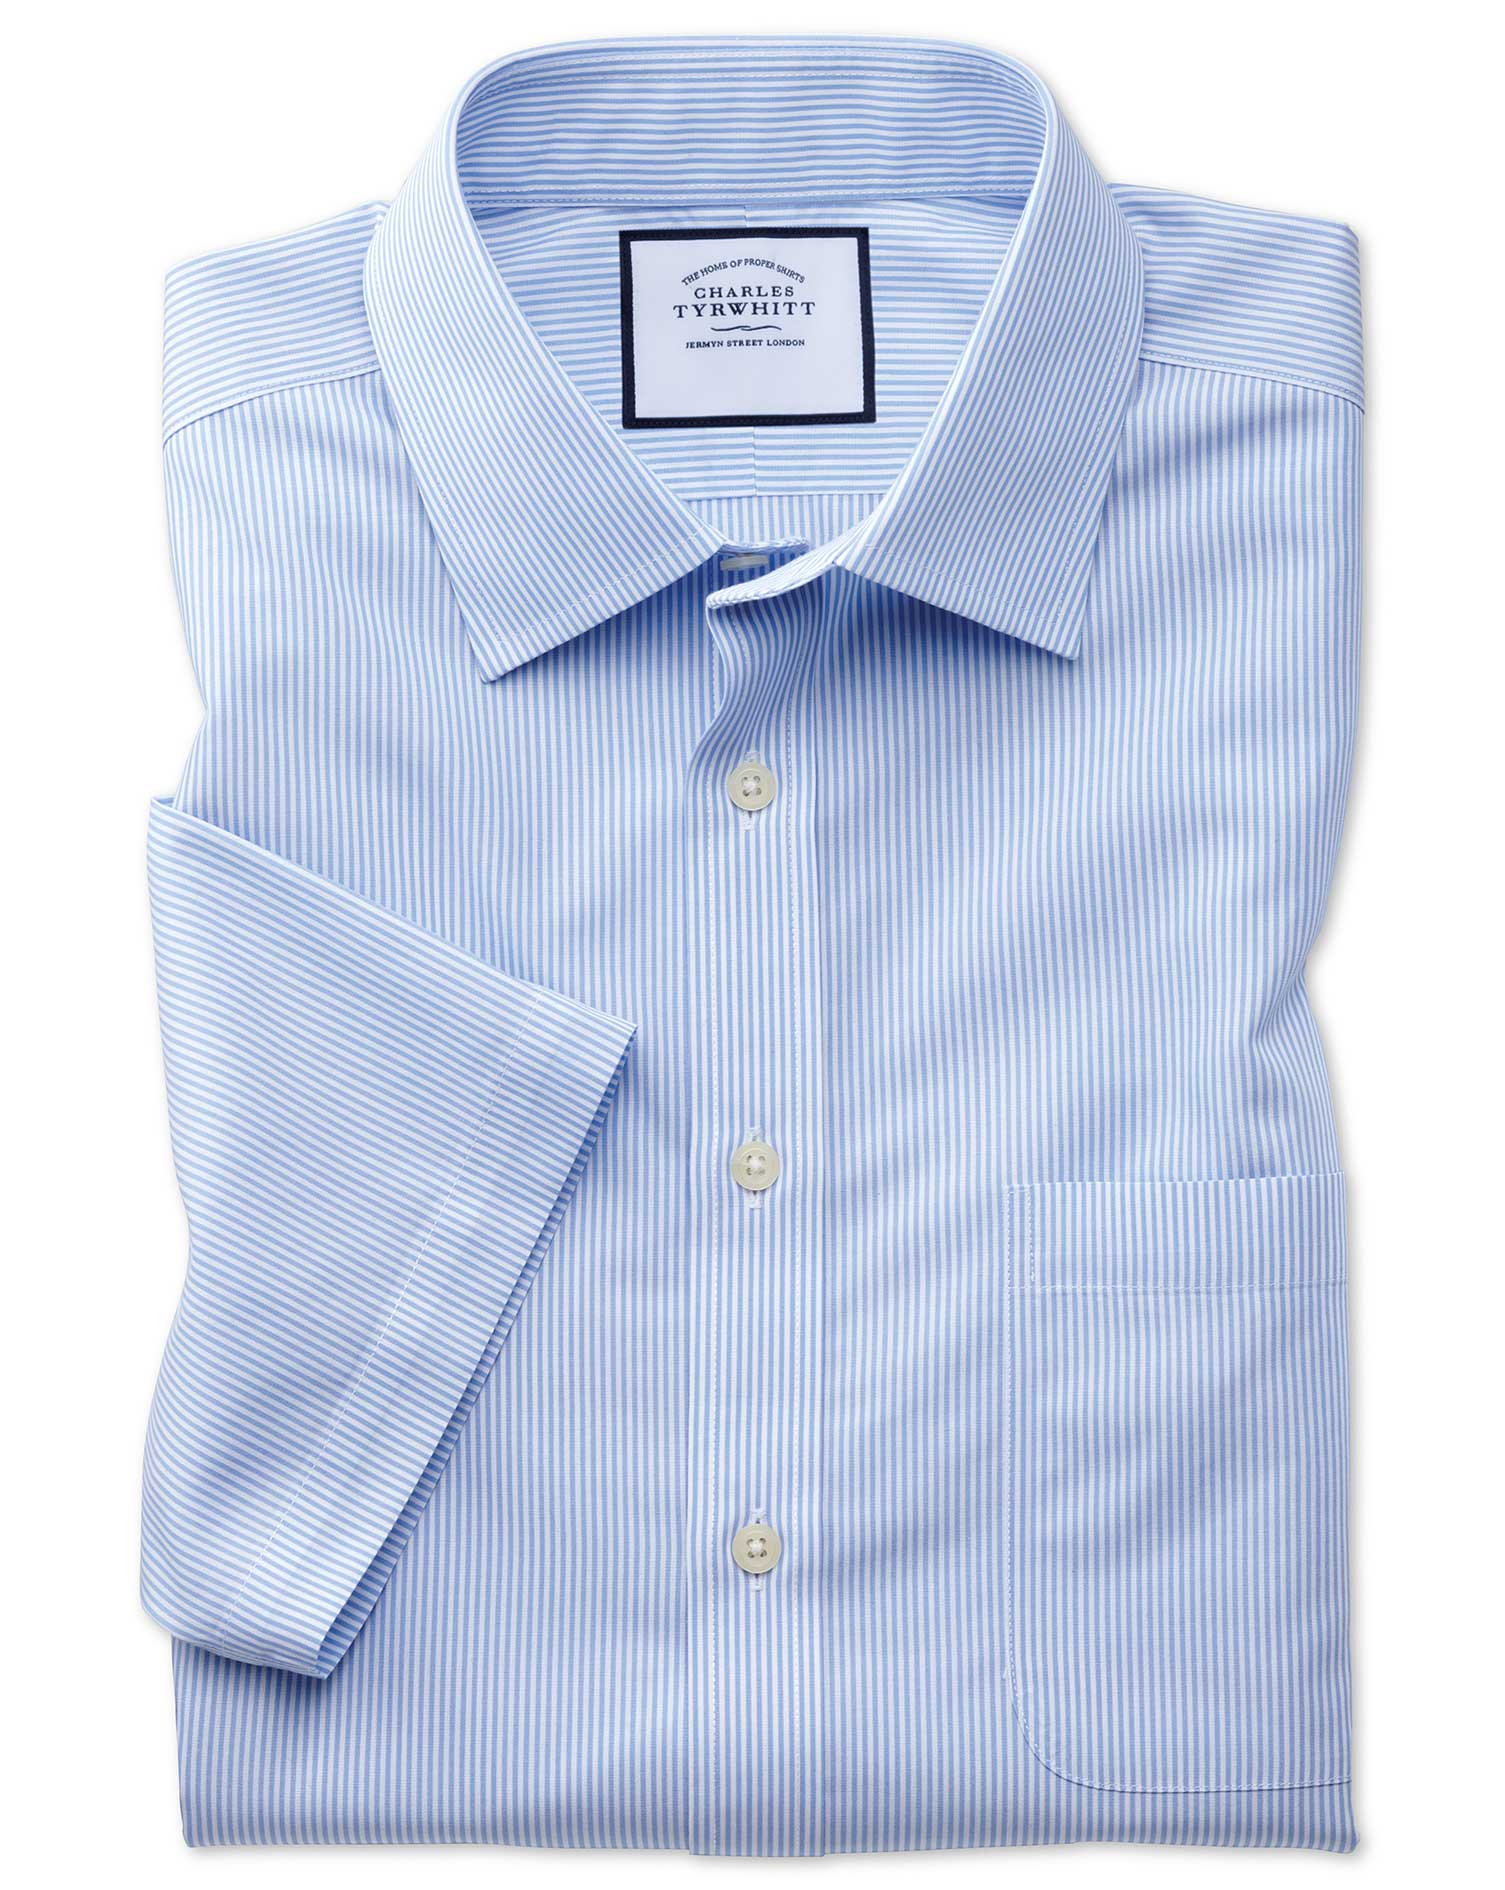 Slim Fit Non-Iron Bengal Stripe Short Sleeve Sky Cotton Formal Shirt Size 16.5/Short by Charles Tyrw